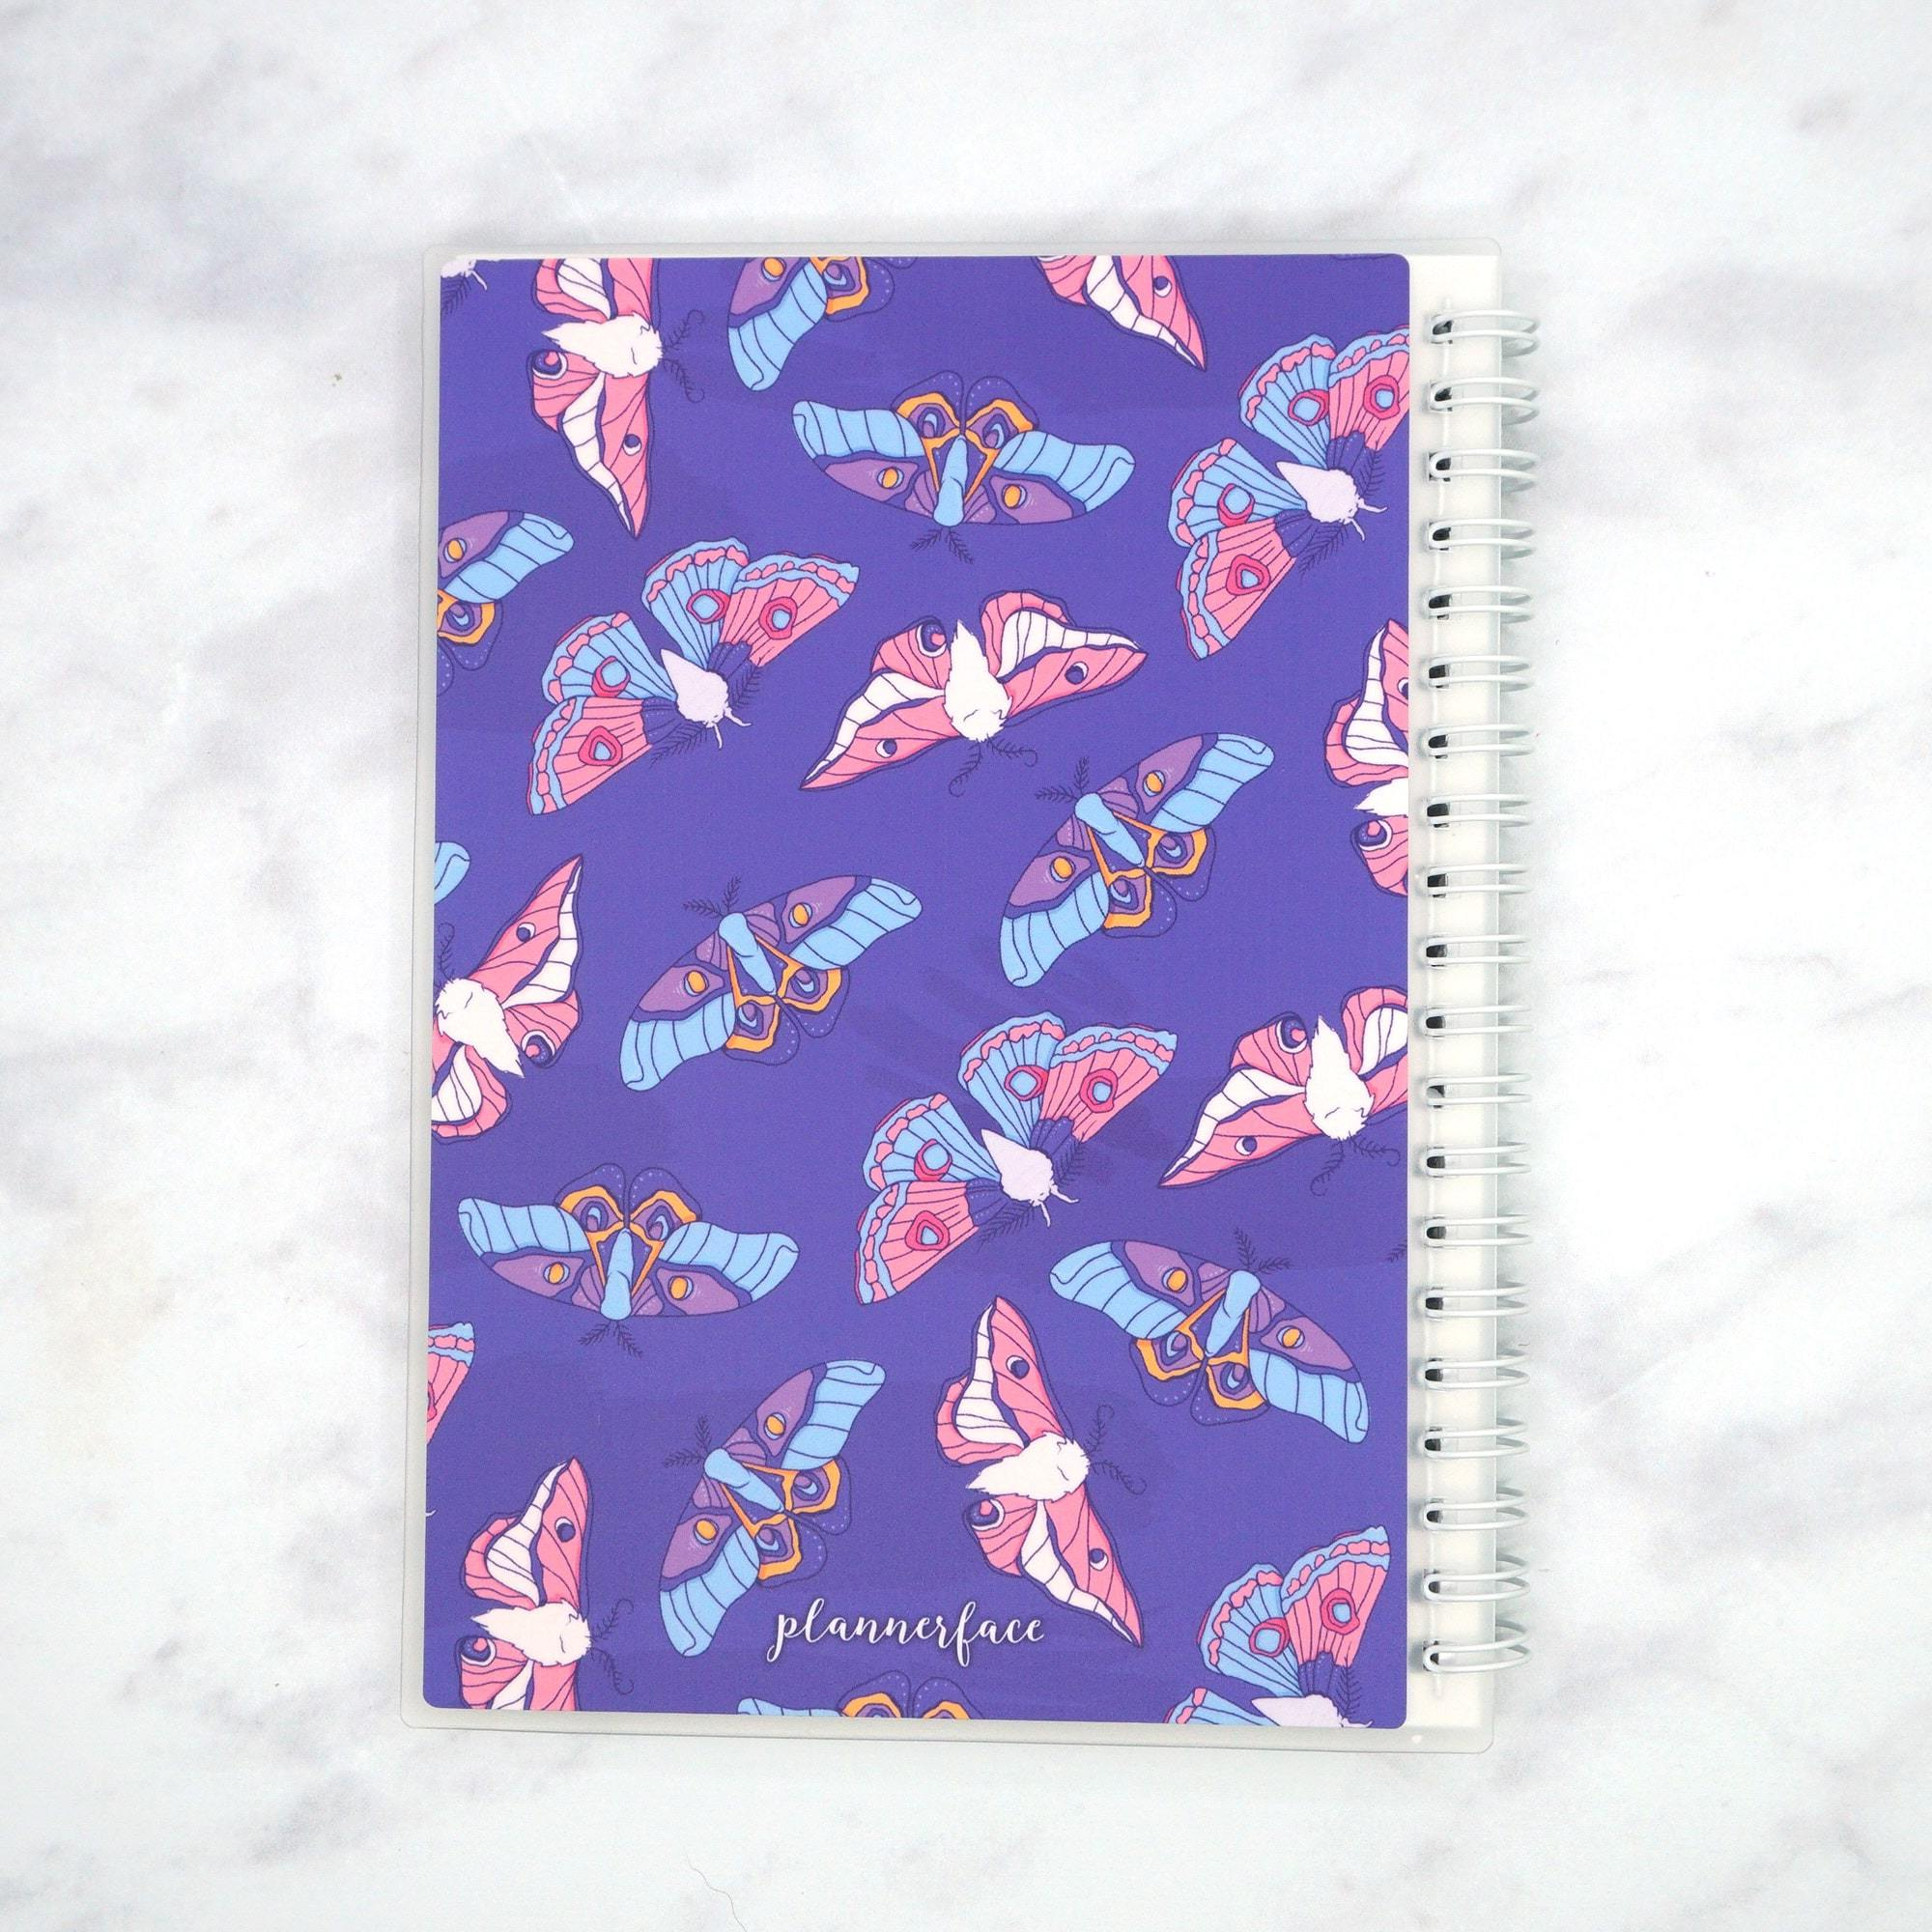 "Plannerface Moth Reusable Sticker Album (5"" x 7"") 